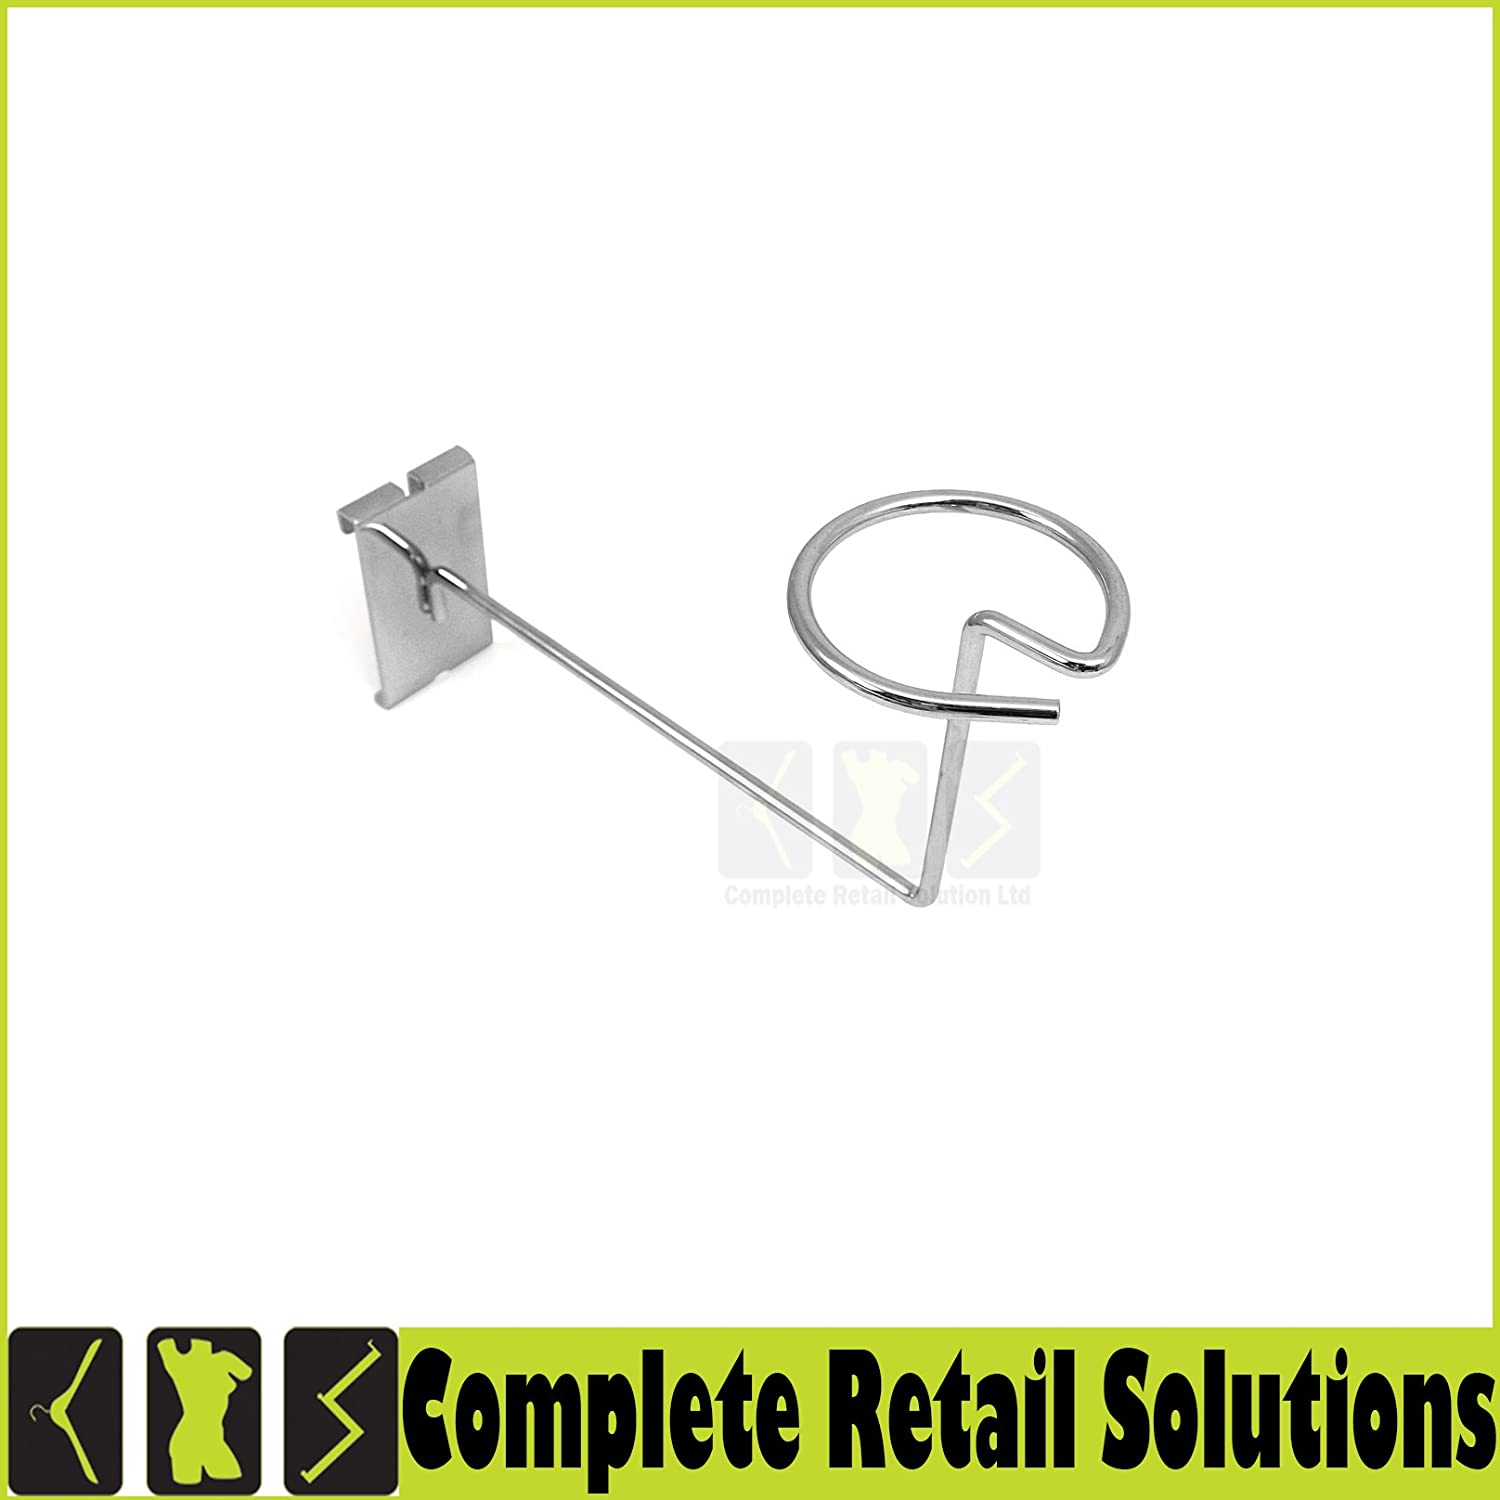 GRID WALL GRIDWALL MESH CHROME RETAIL SHOP DISPLAY PANEL ACCESSORY HOOK ARM ARMS (MILLINERY ARM) CRS